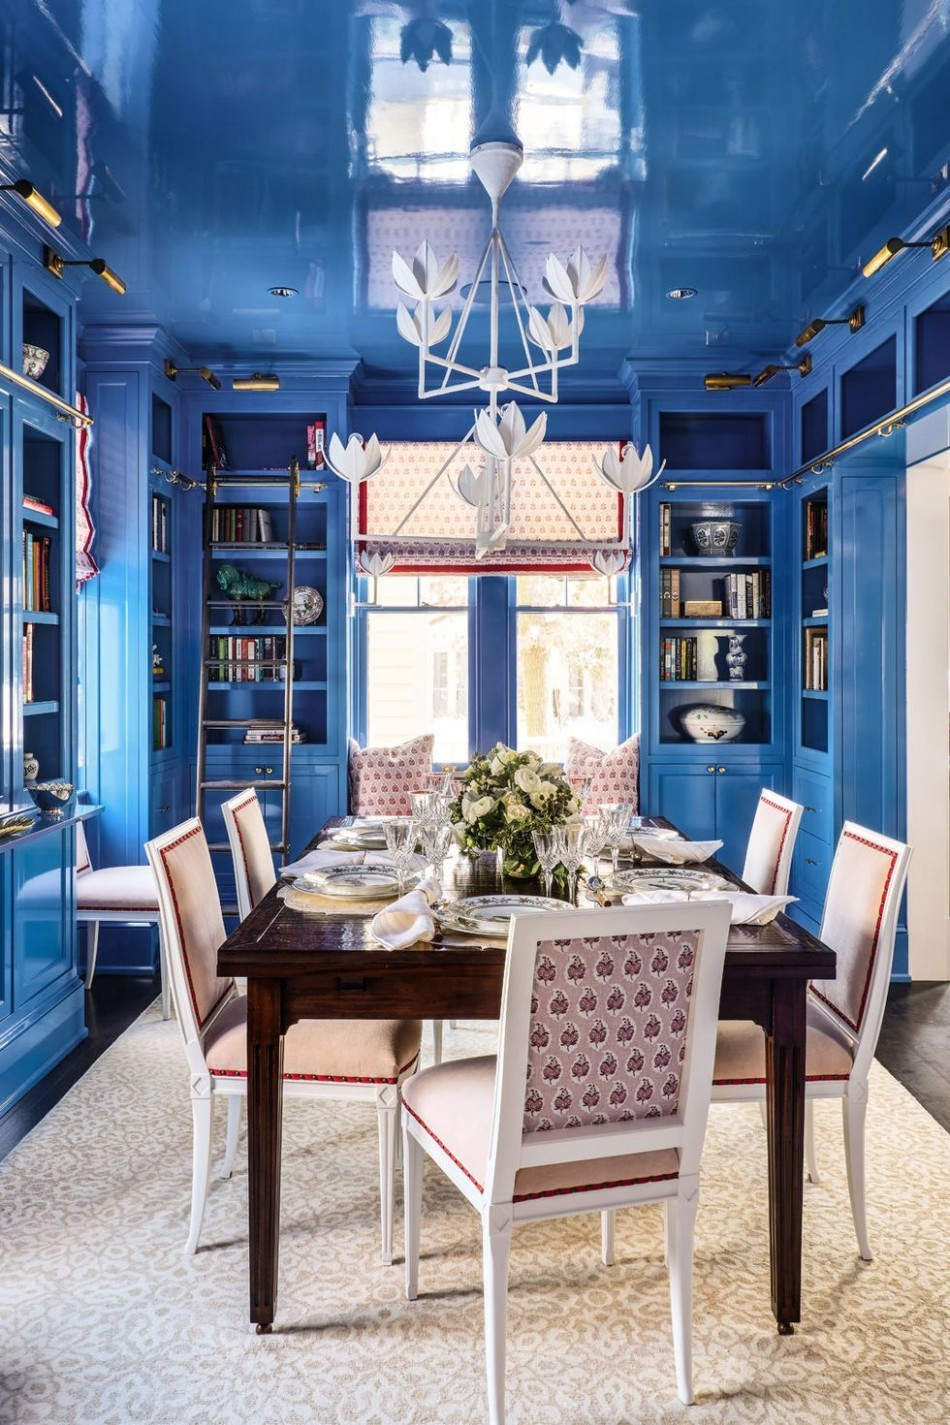 10 Best Blue Rooms - Decor Ideas for Light and Dark Blue Rooms - Dining Room Ideas Blue Walls